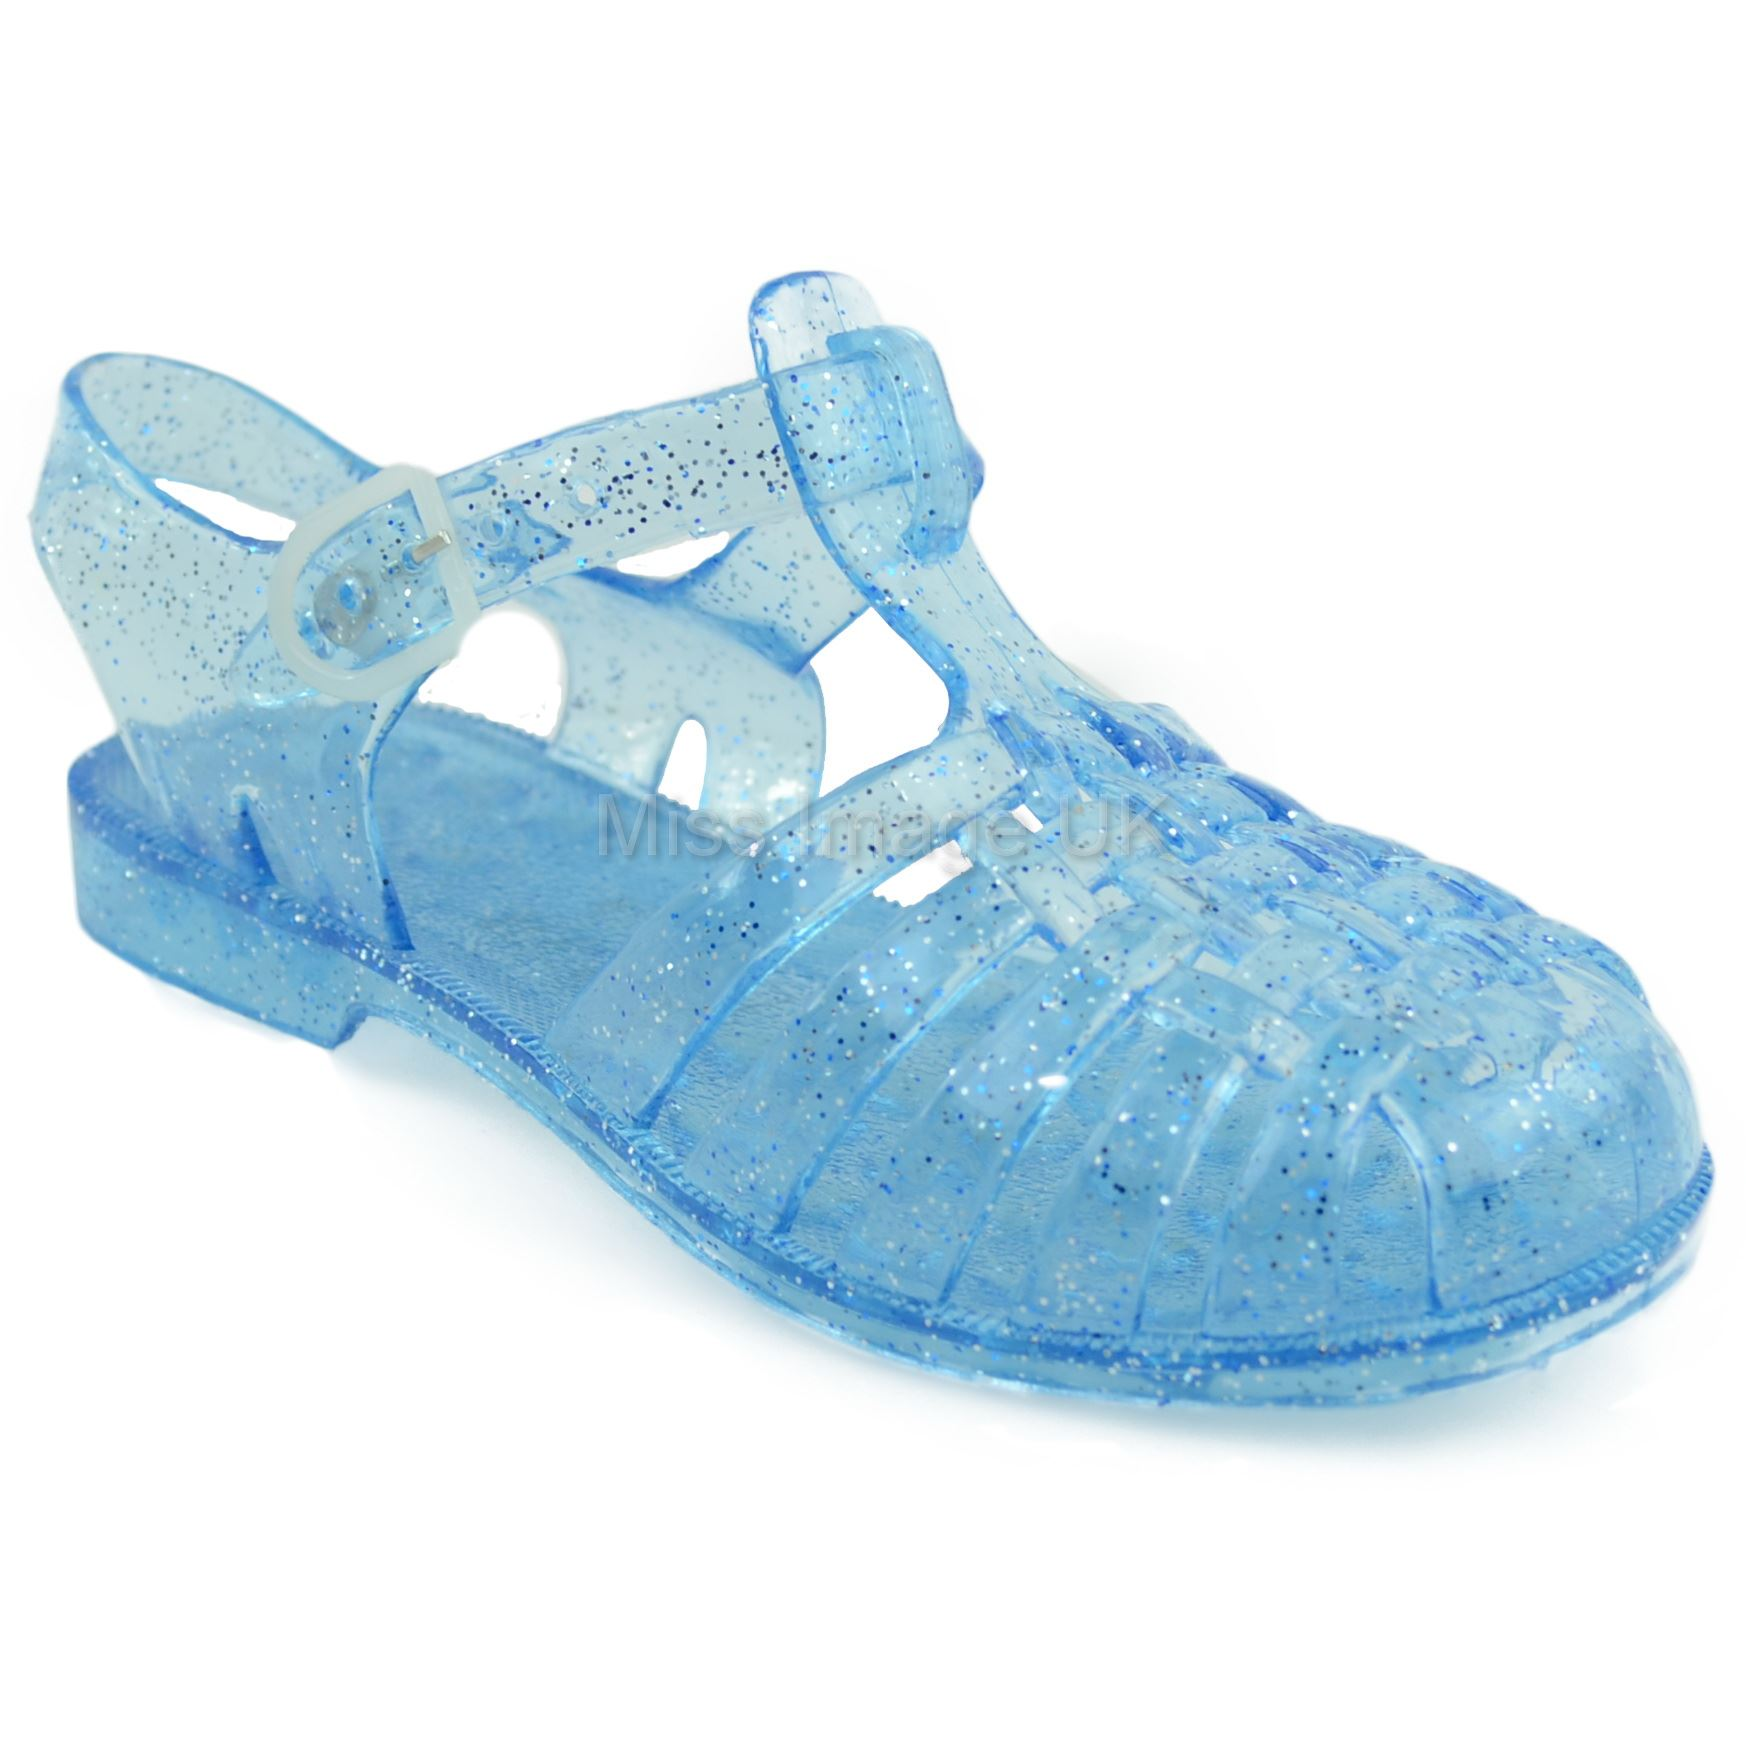 Find great deals on eBay for jelly shoes kids. Shop with confidence.